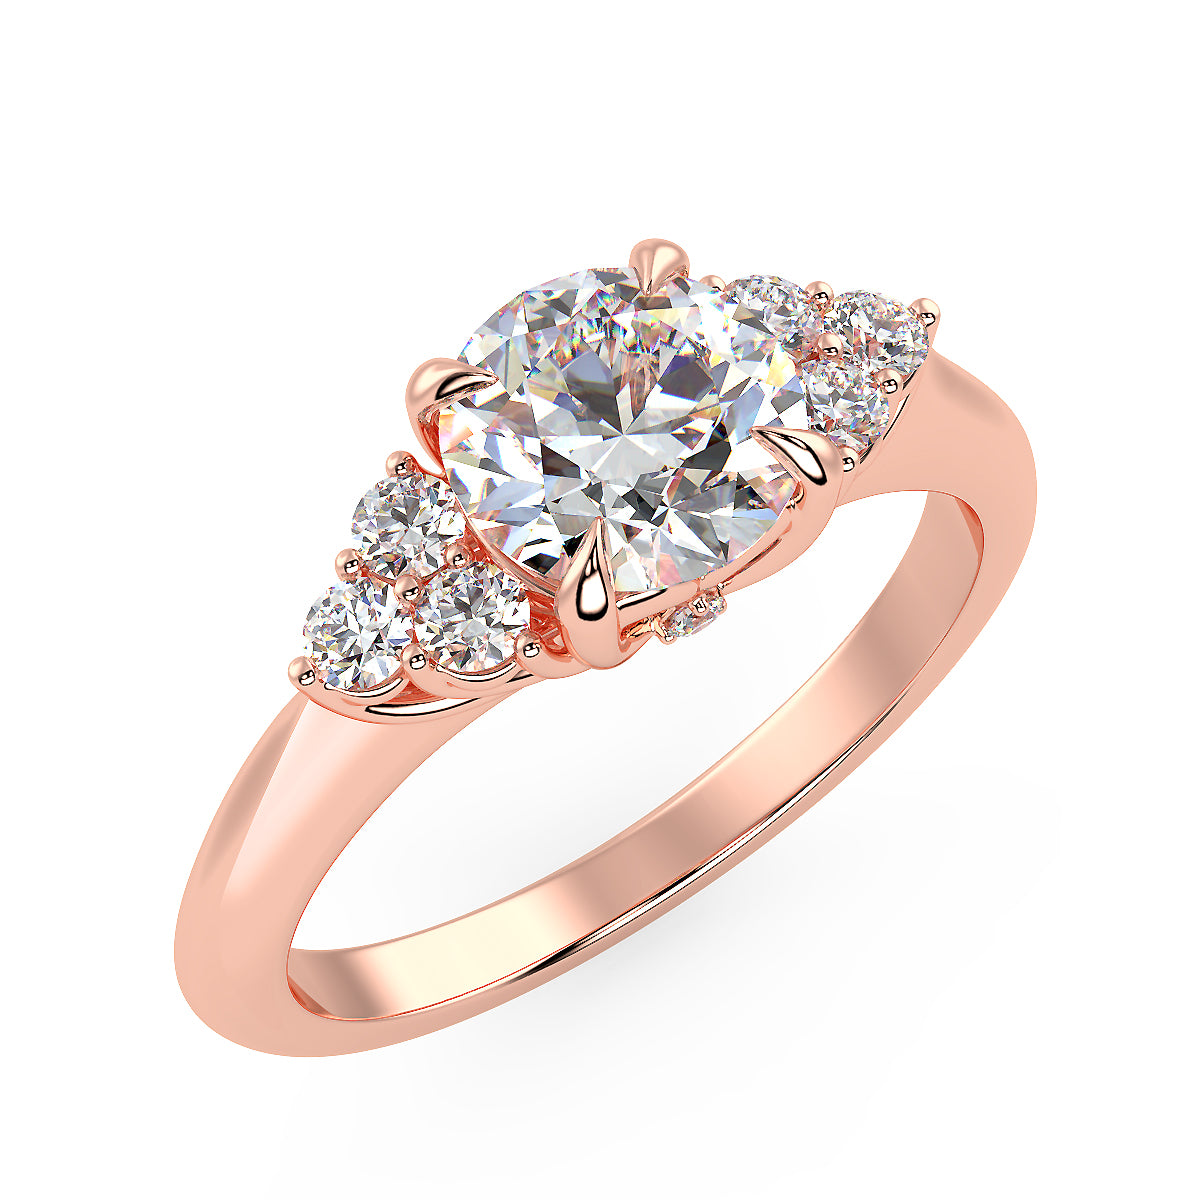 Zania Engagement Ring in Rose Gold